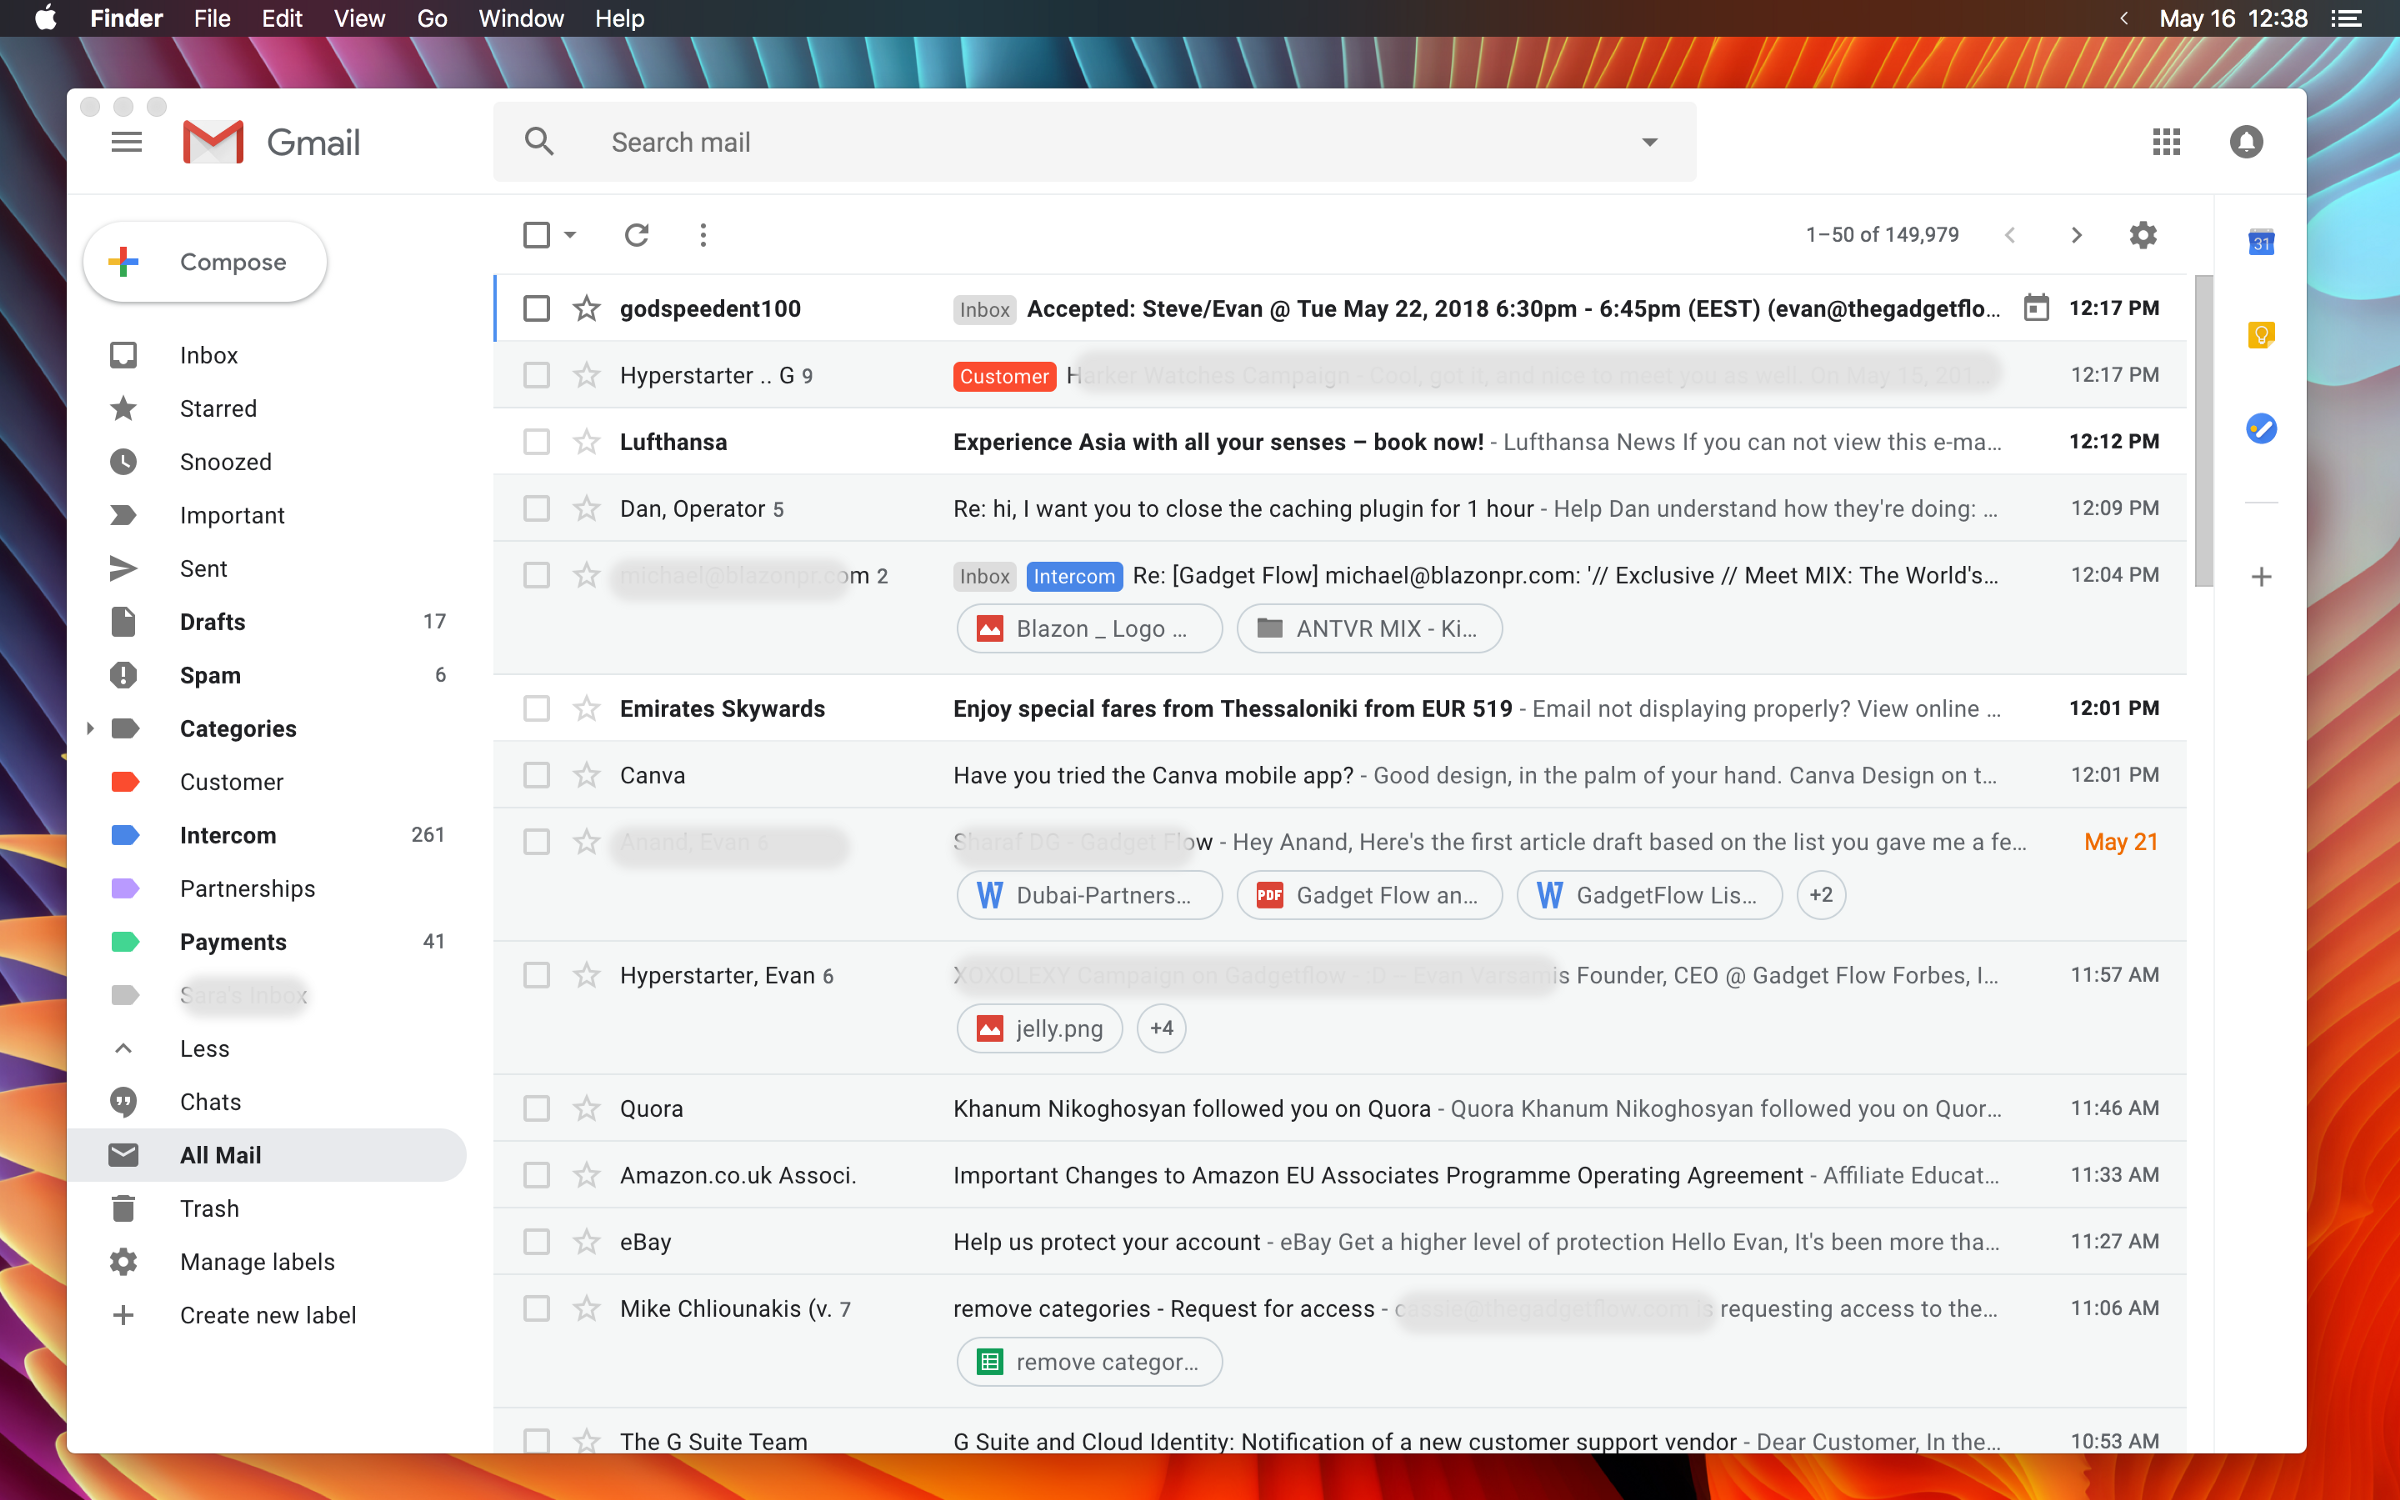 The Best Email Setup for Ultimate Productivity in 2018 - By Evan